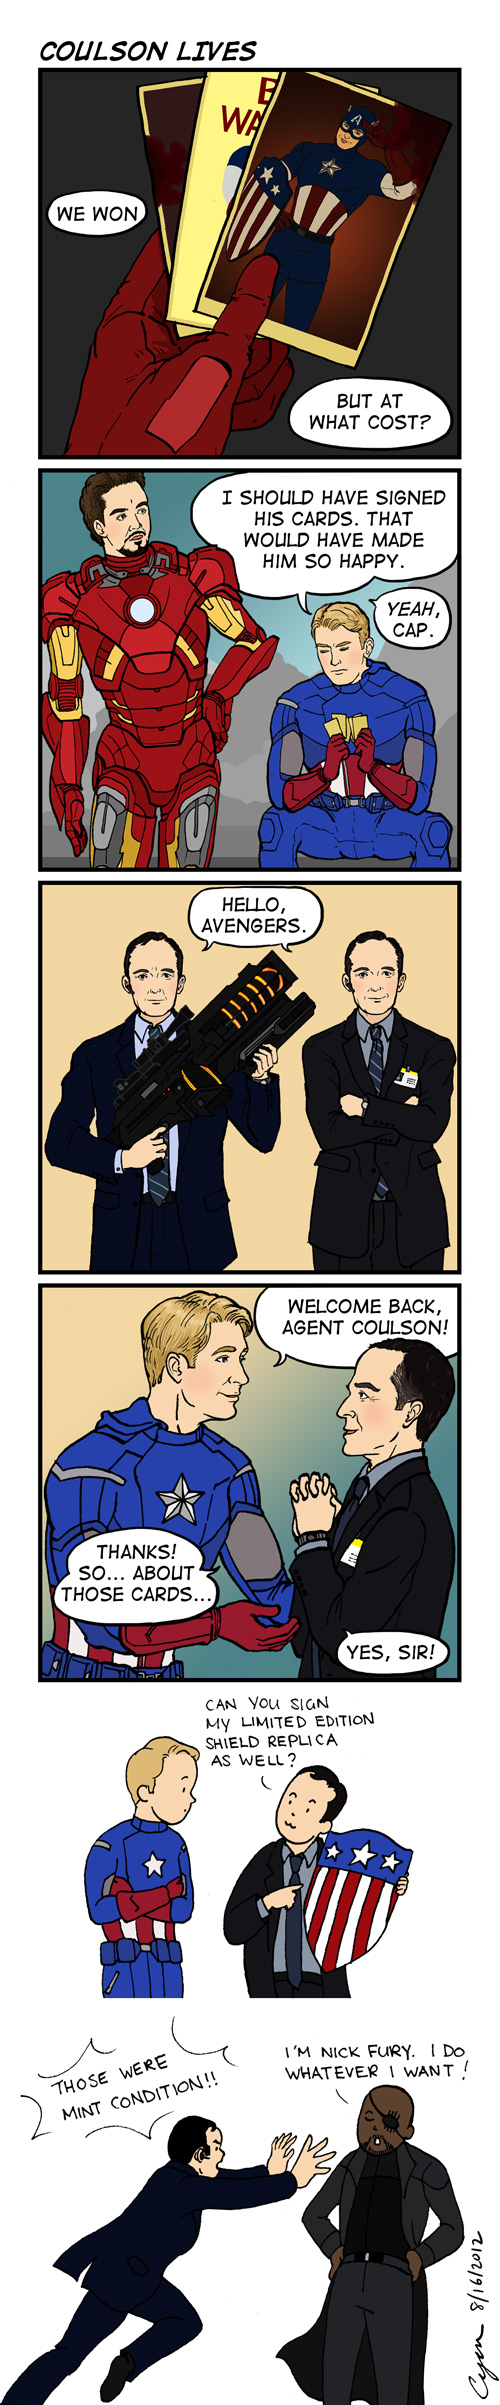 Coulson Lives by cyen